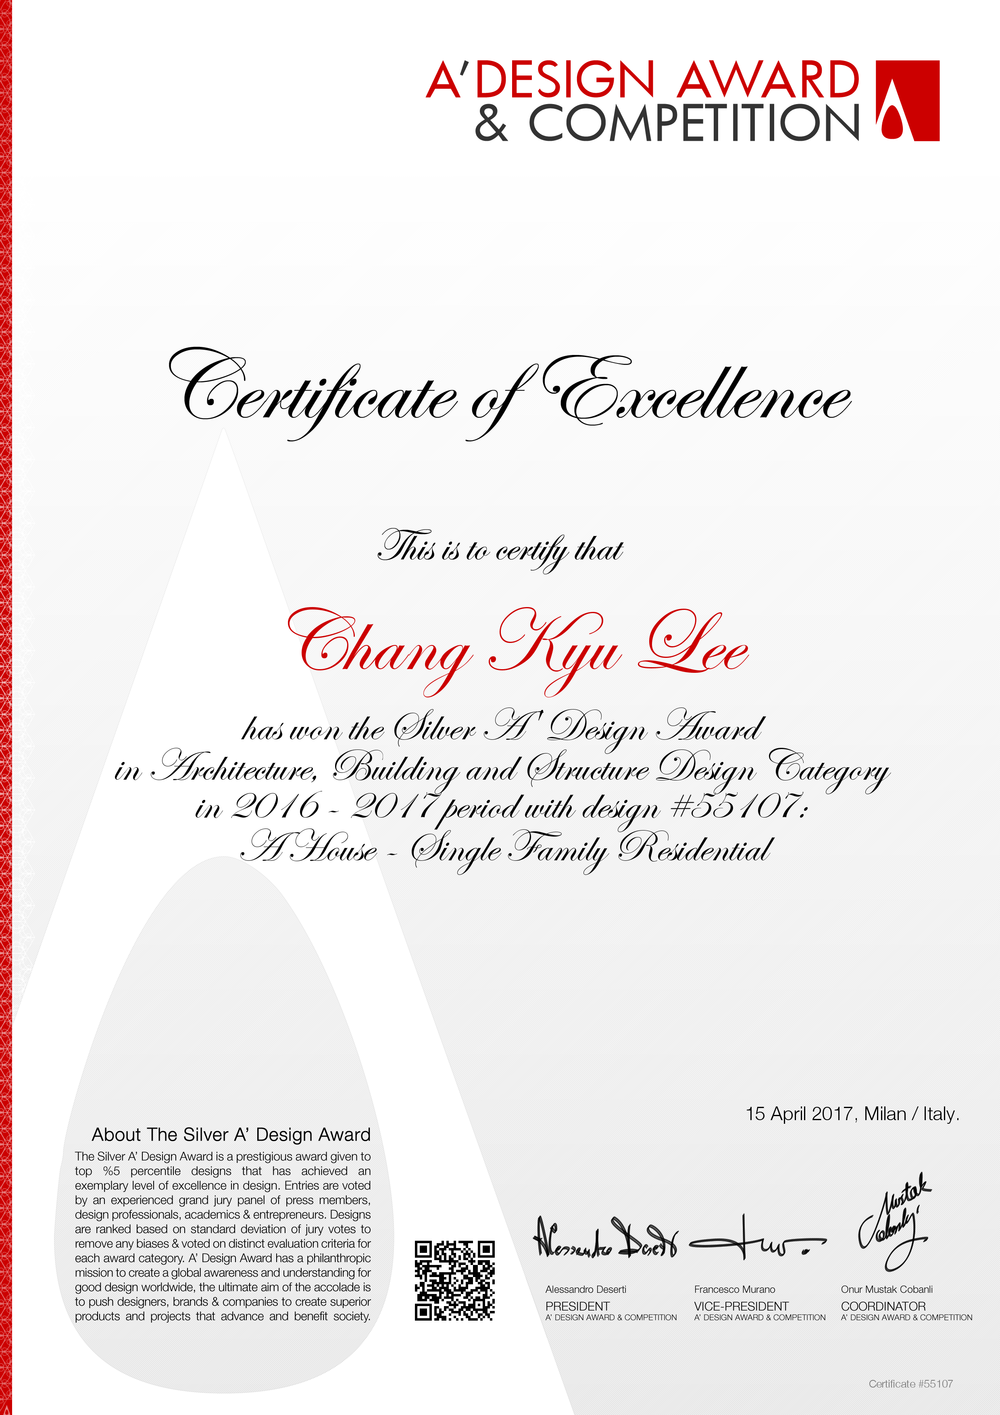 55107-certificate-wn.png